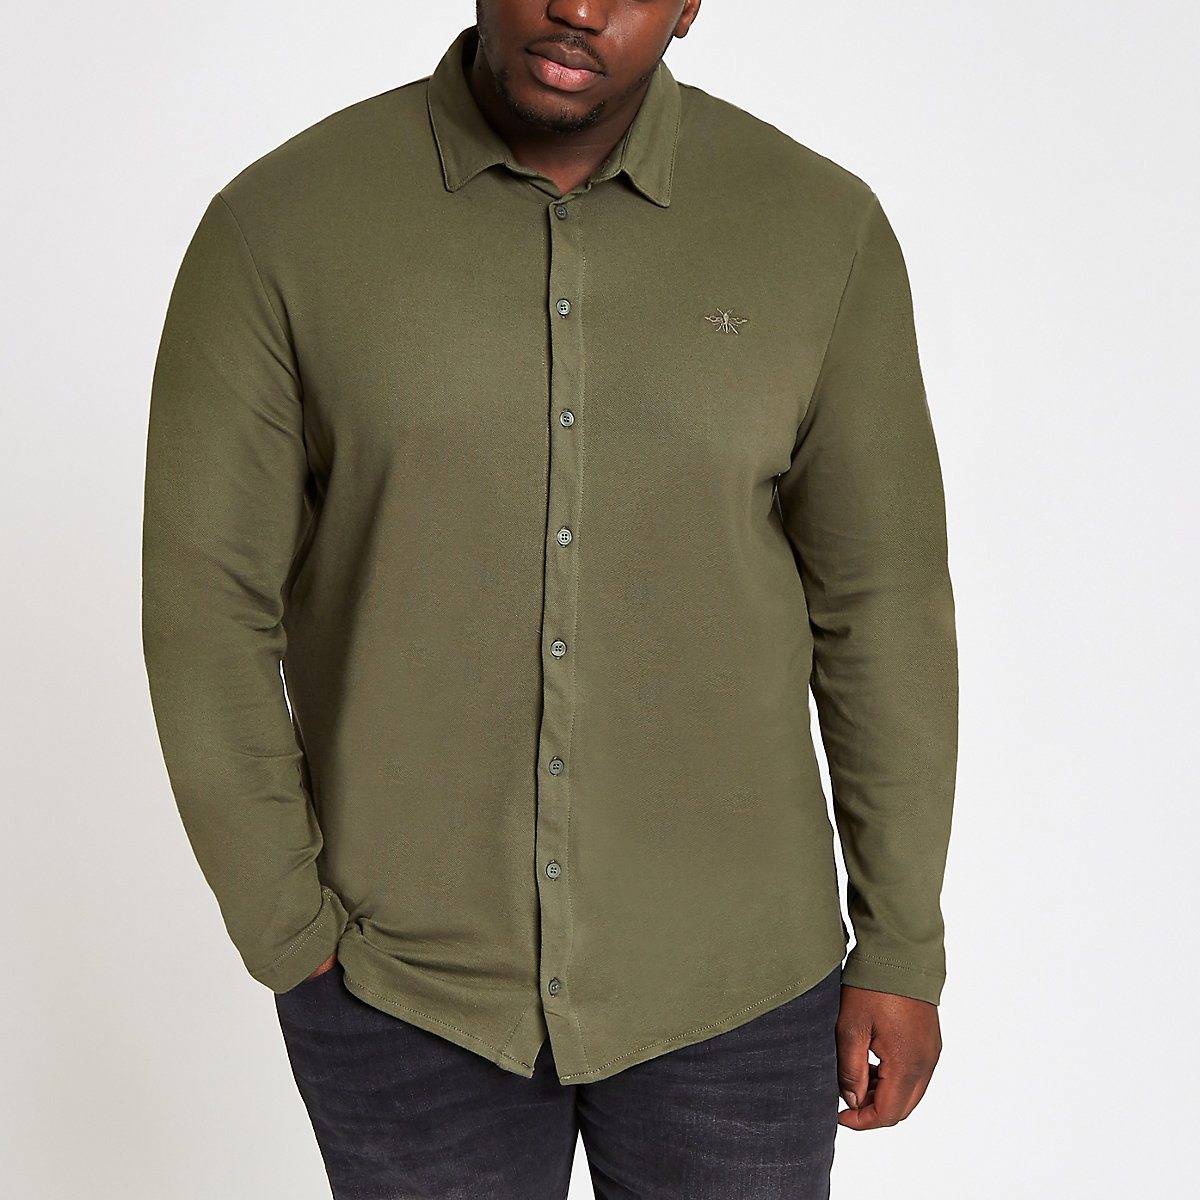 Big & Tall dark green button through shirt